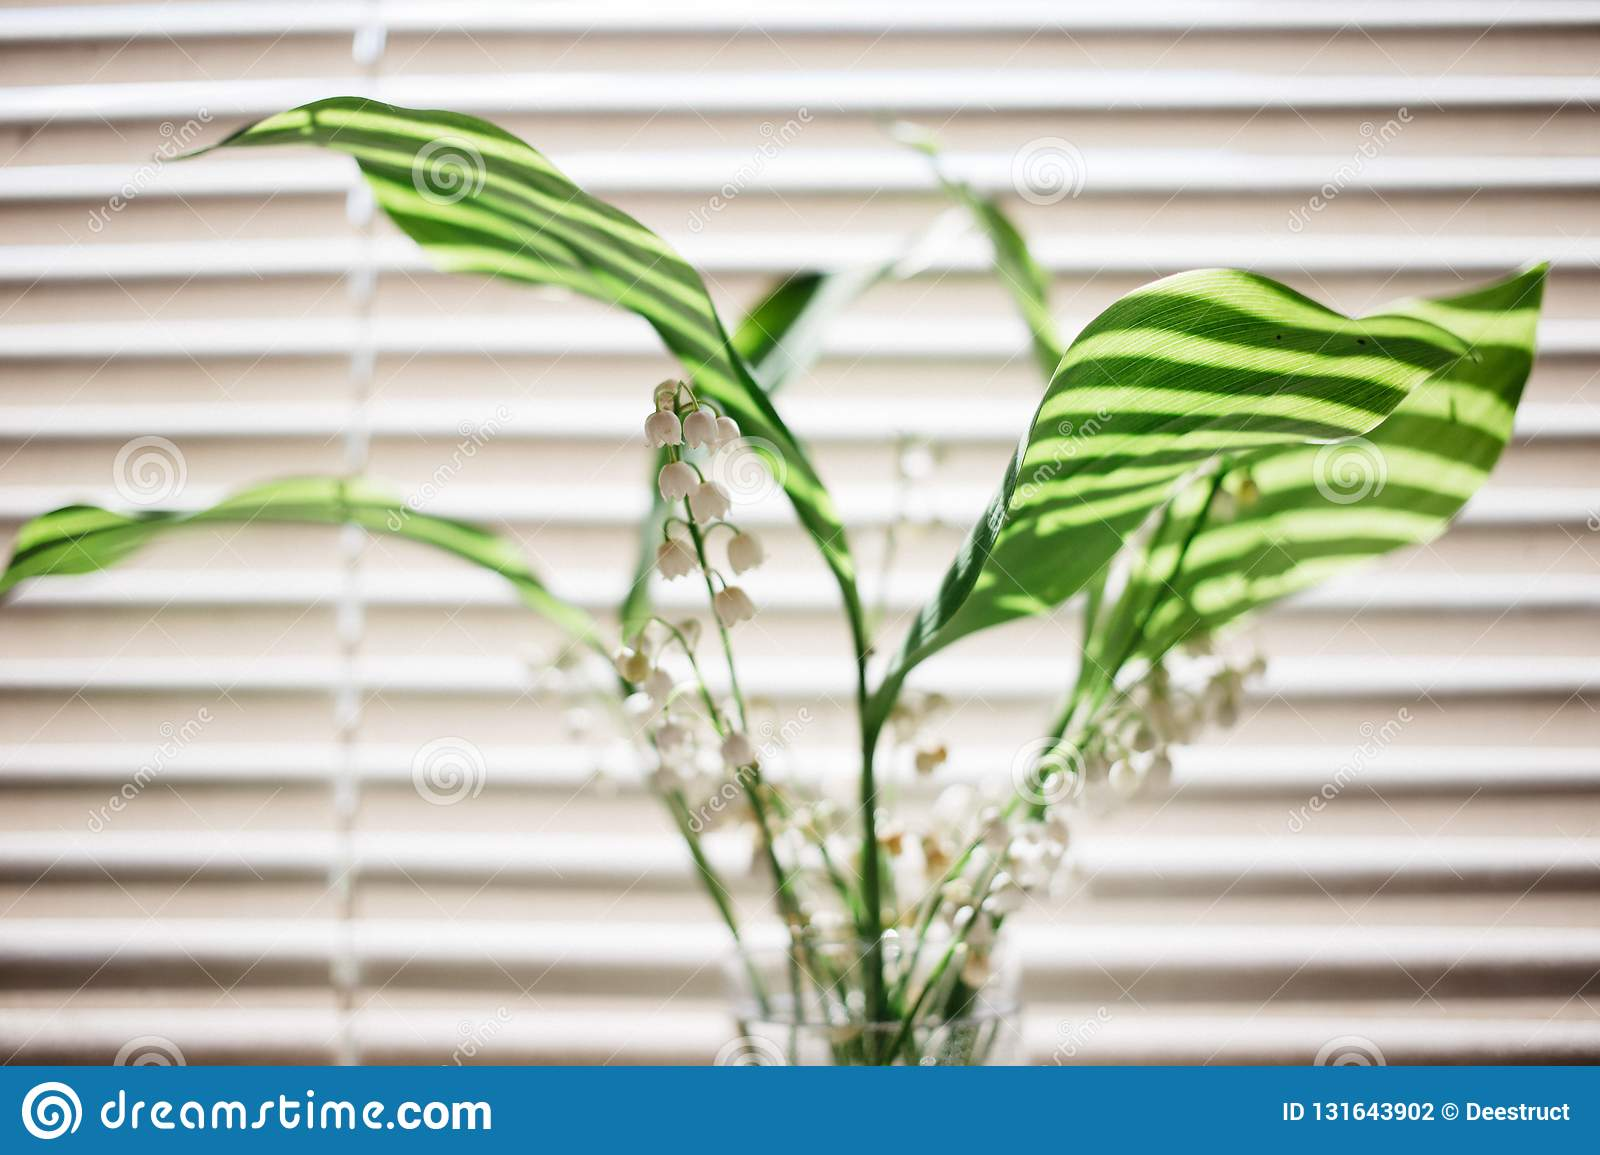 lily of the valley flowers bouquet on the background of blinds